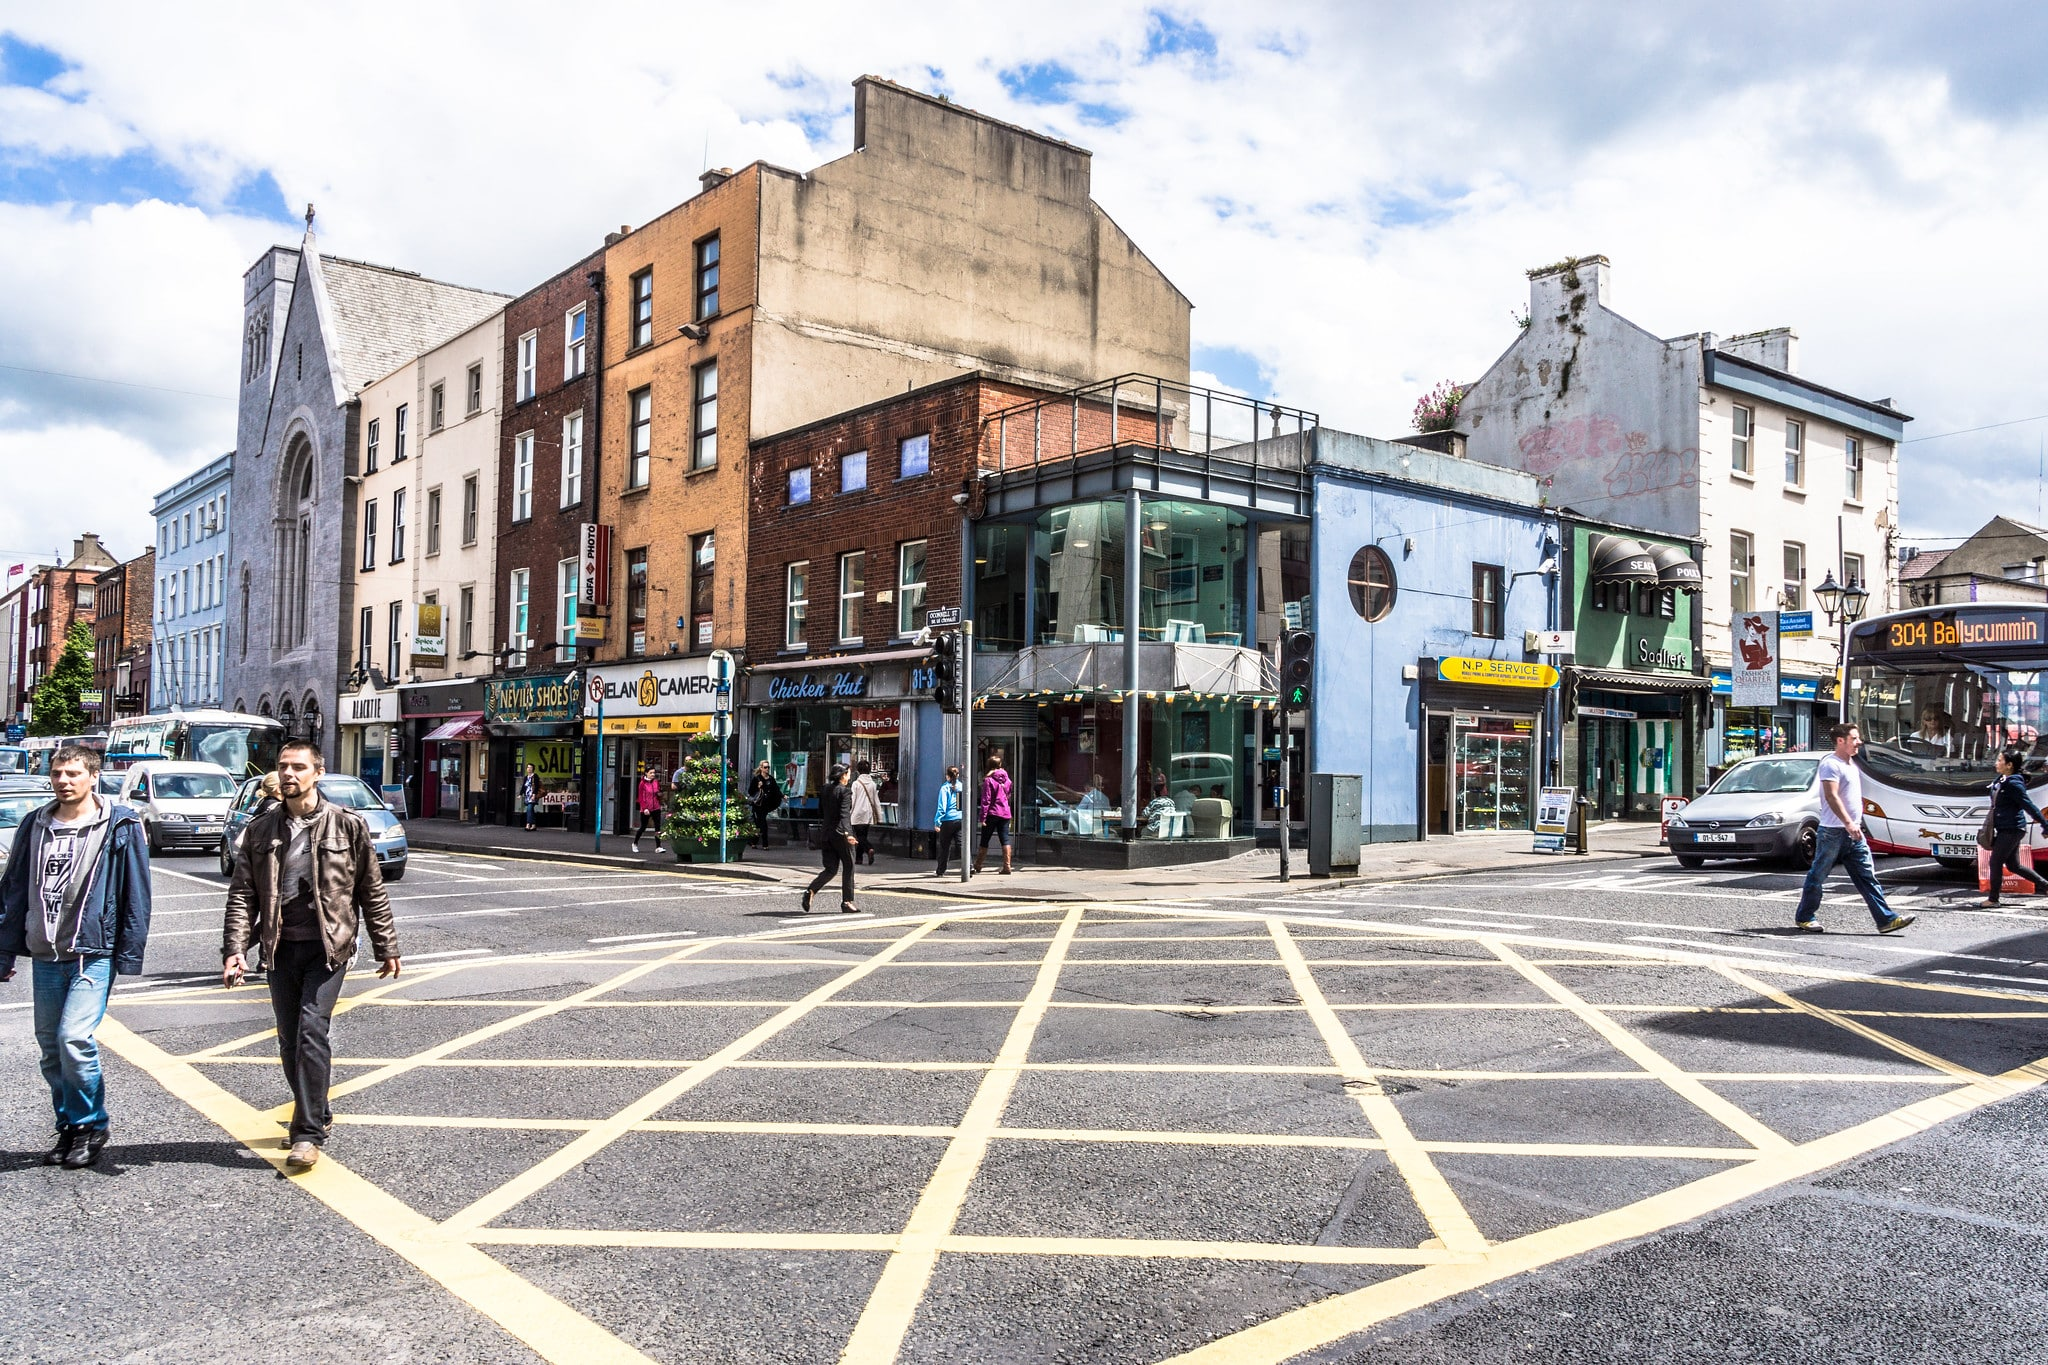 Limerick is one of the best cities to visit in Ireland